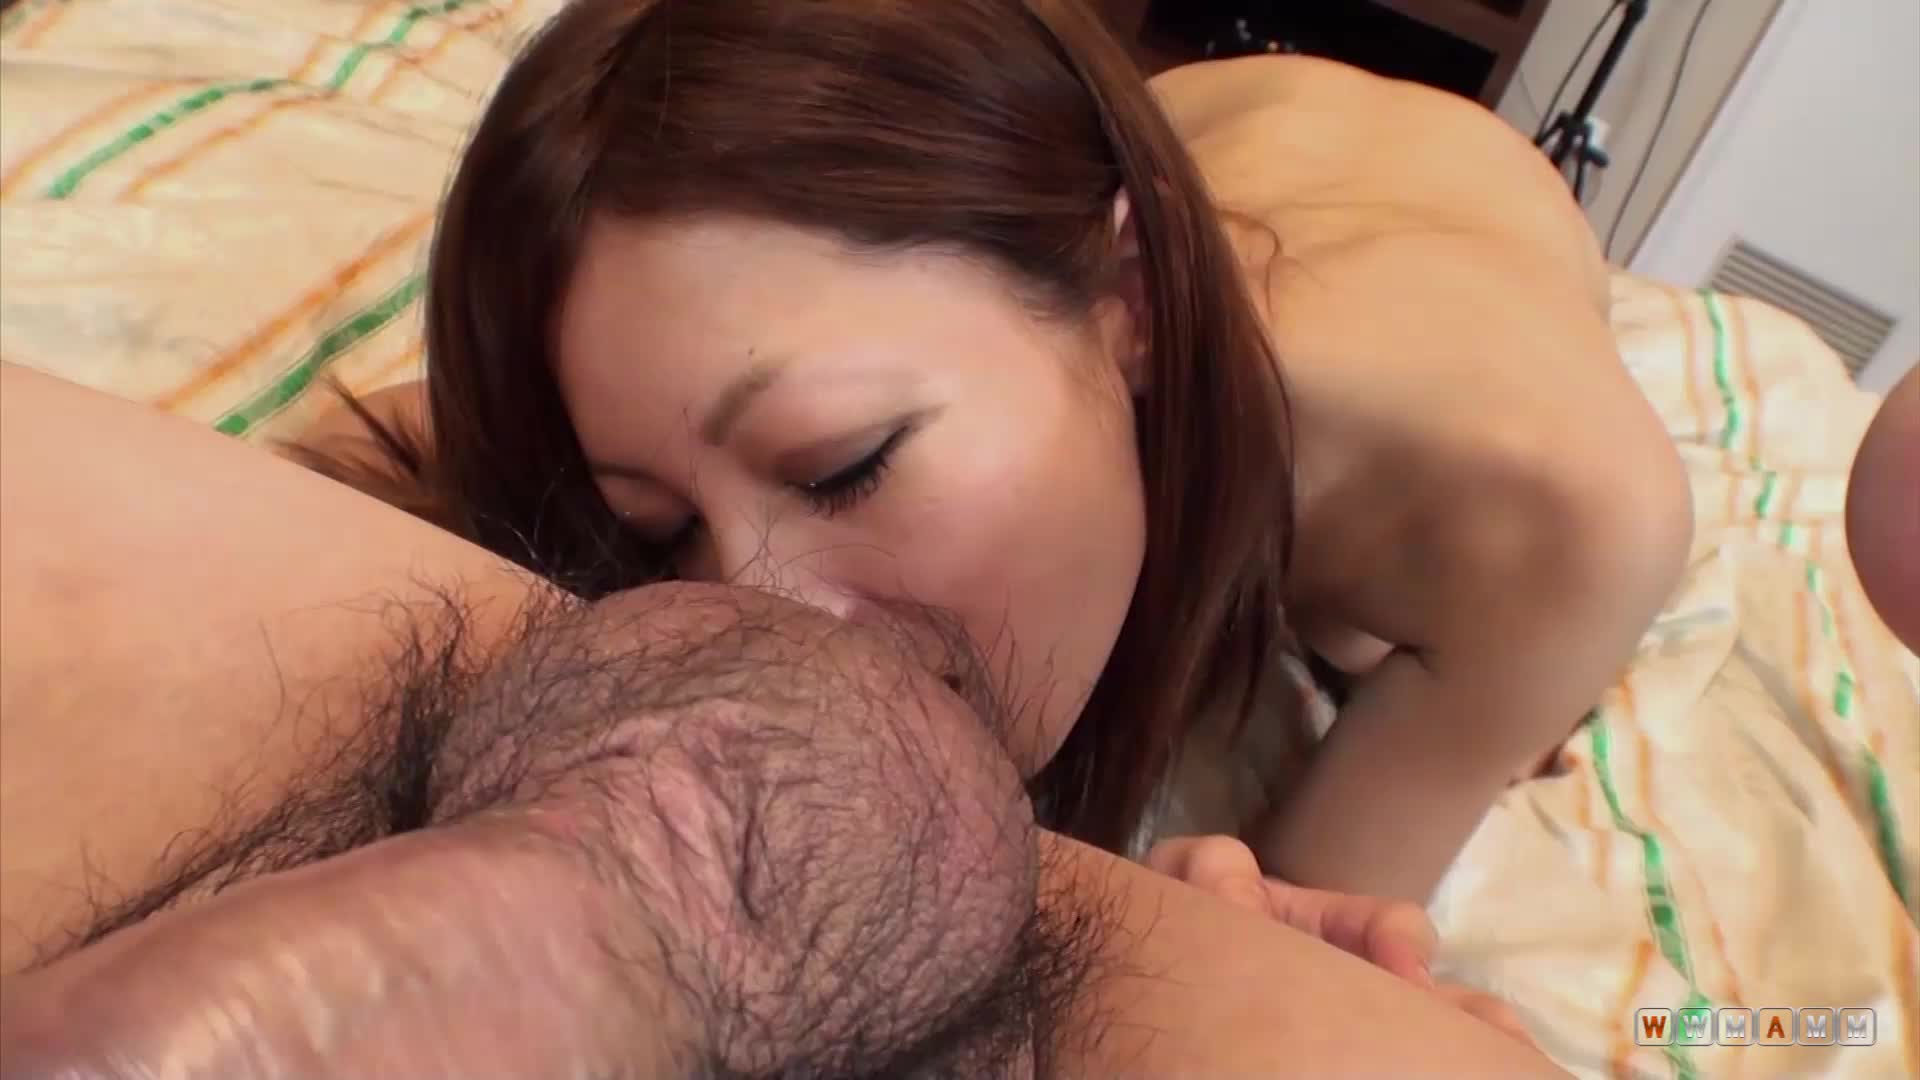 Close Up Of Stranger Asian Teen Sucking On My Small Dick